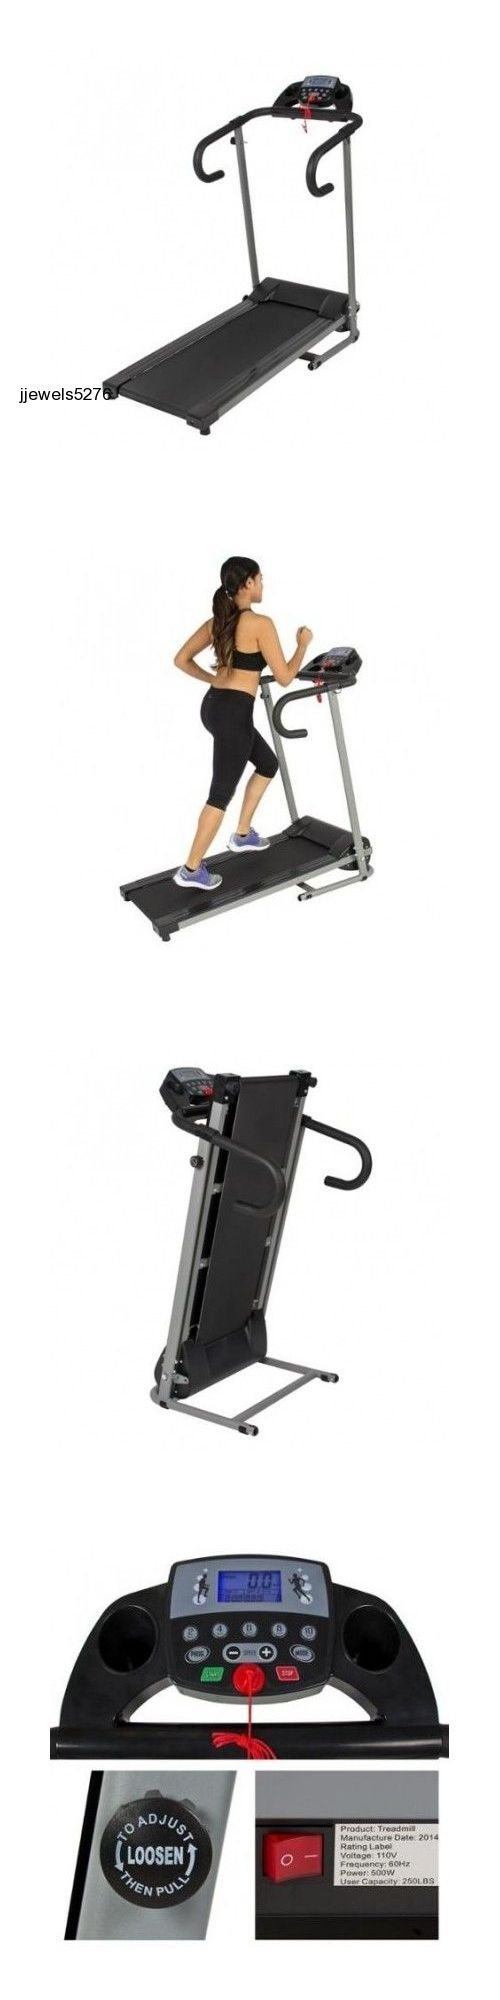 Treadmills 15280: New Folding Treadmill Cardio Equipment Running Walking Machine Exercise Home Gym -> BUY IT NOW ONLY: $236.77 on eBay!